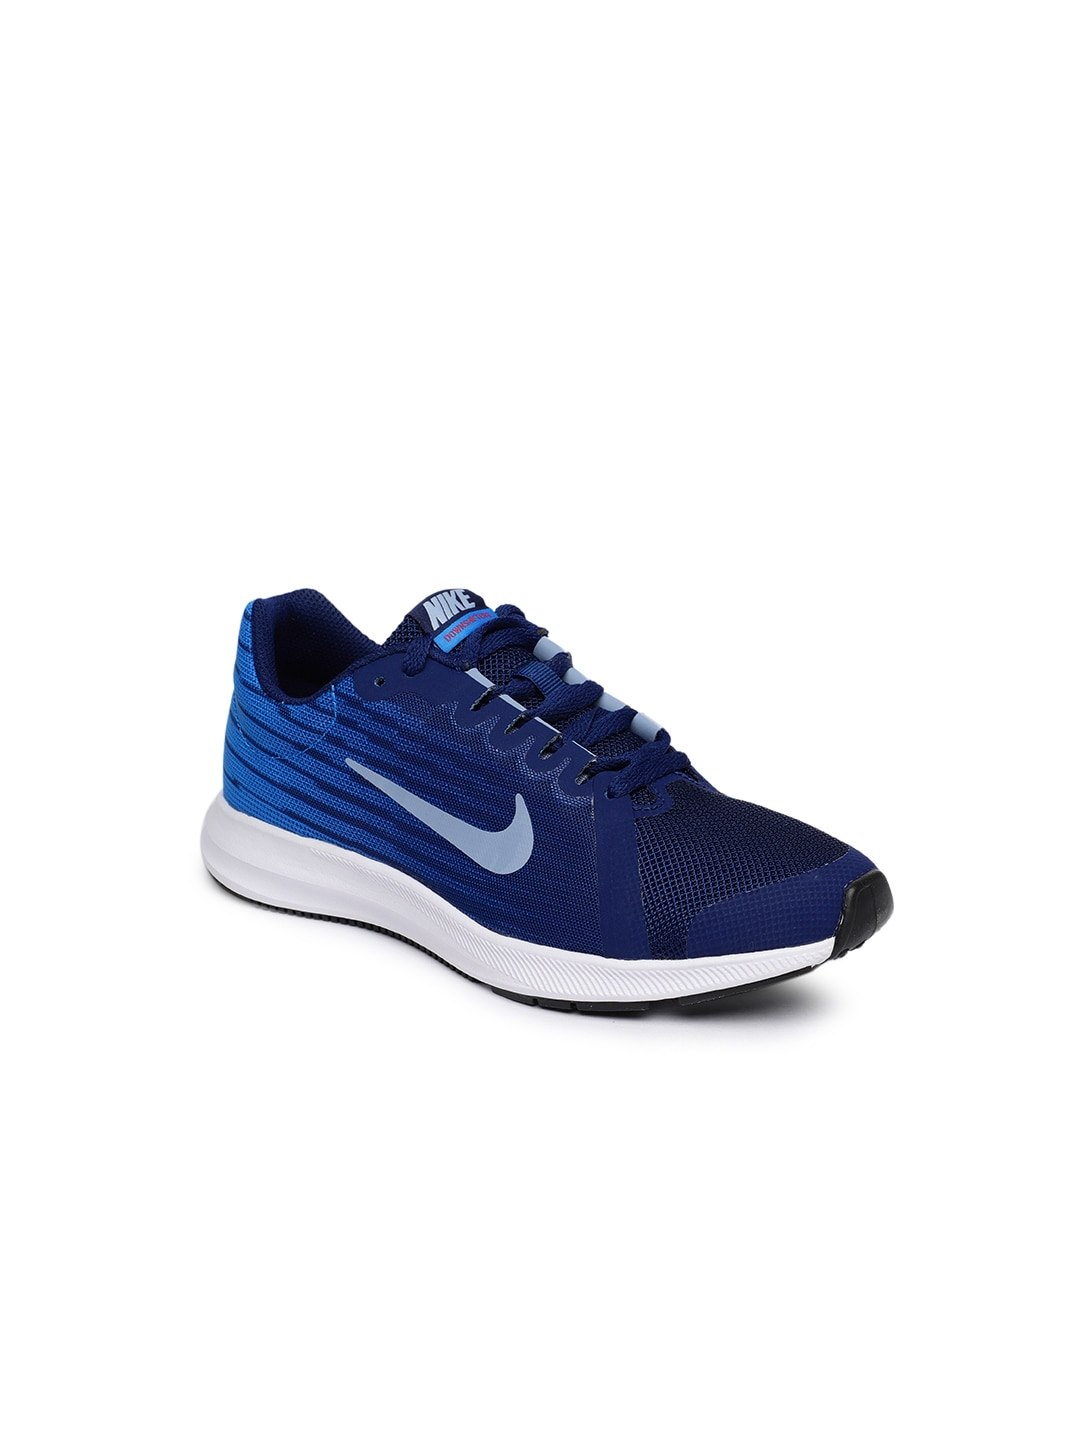 buy popular 251ad d7204 Boys Sports Shoes - Buy Sports Shoes For Kids Online in India